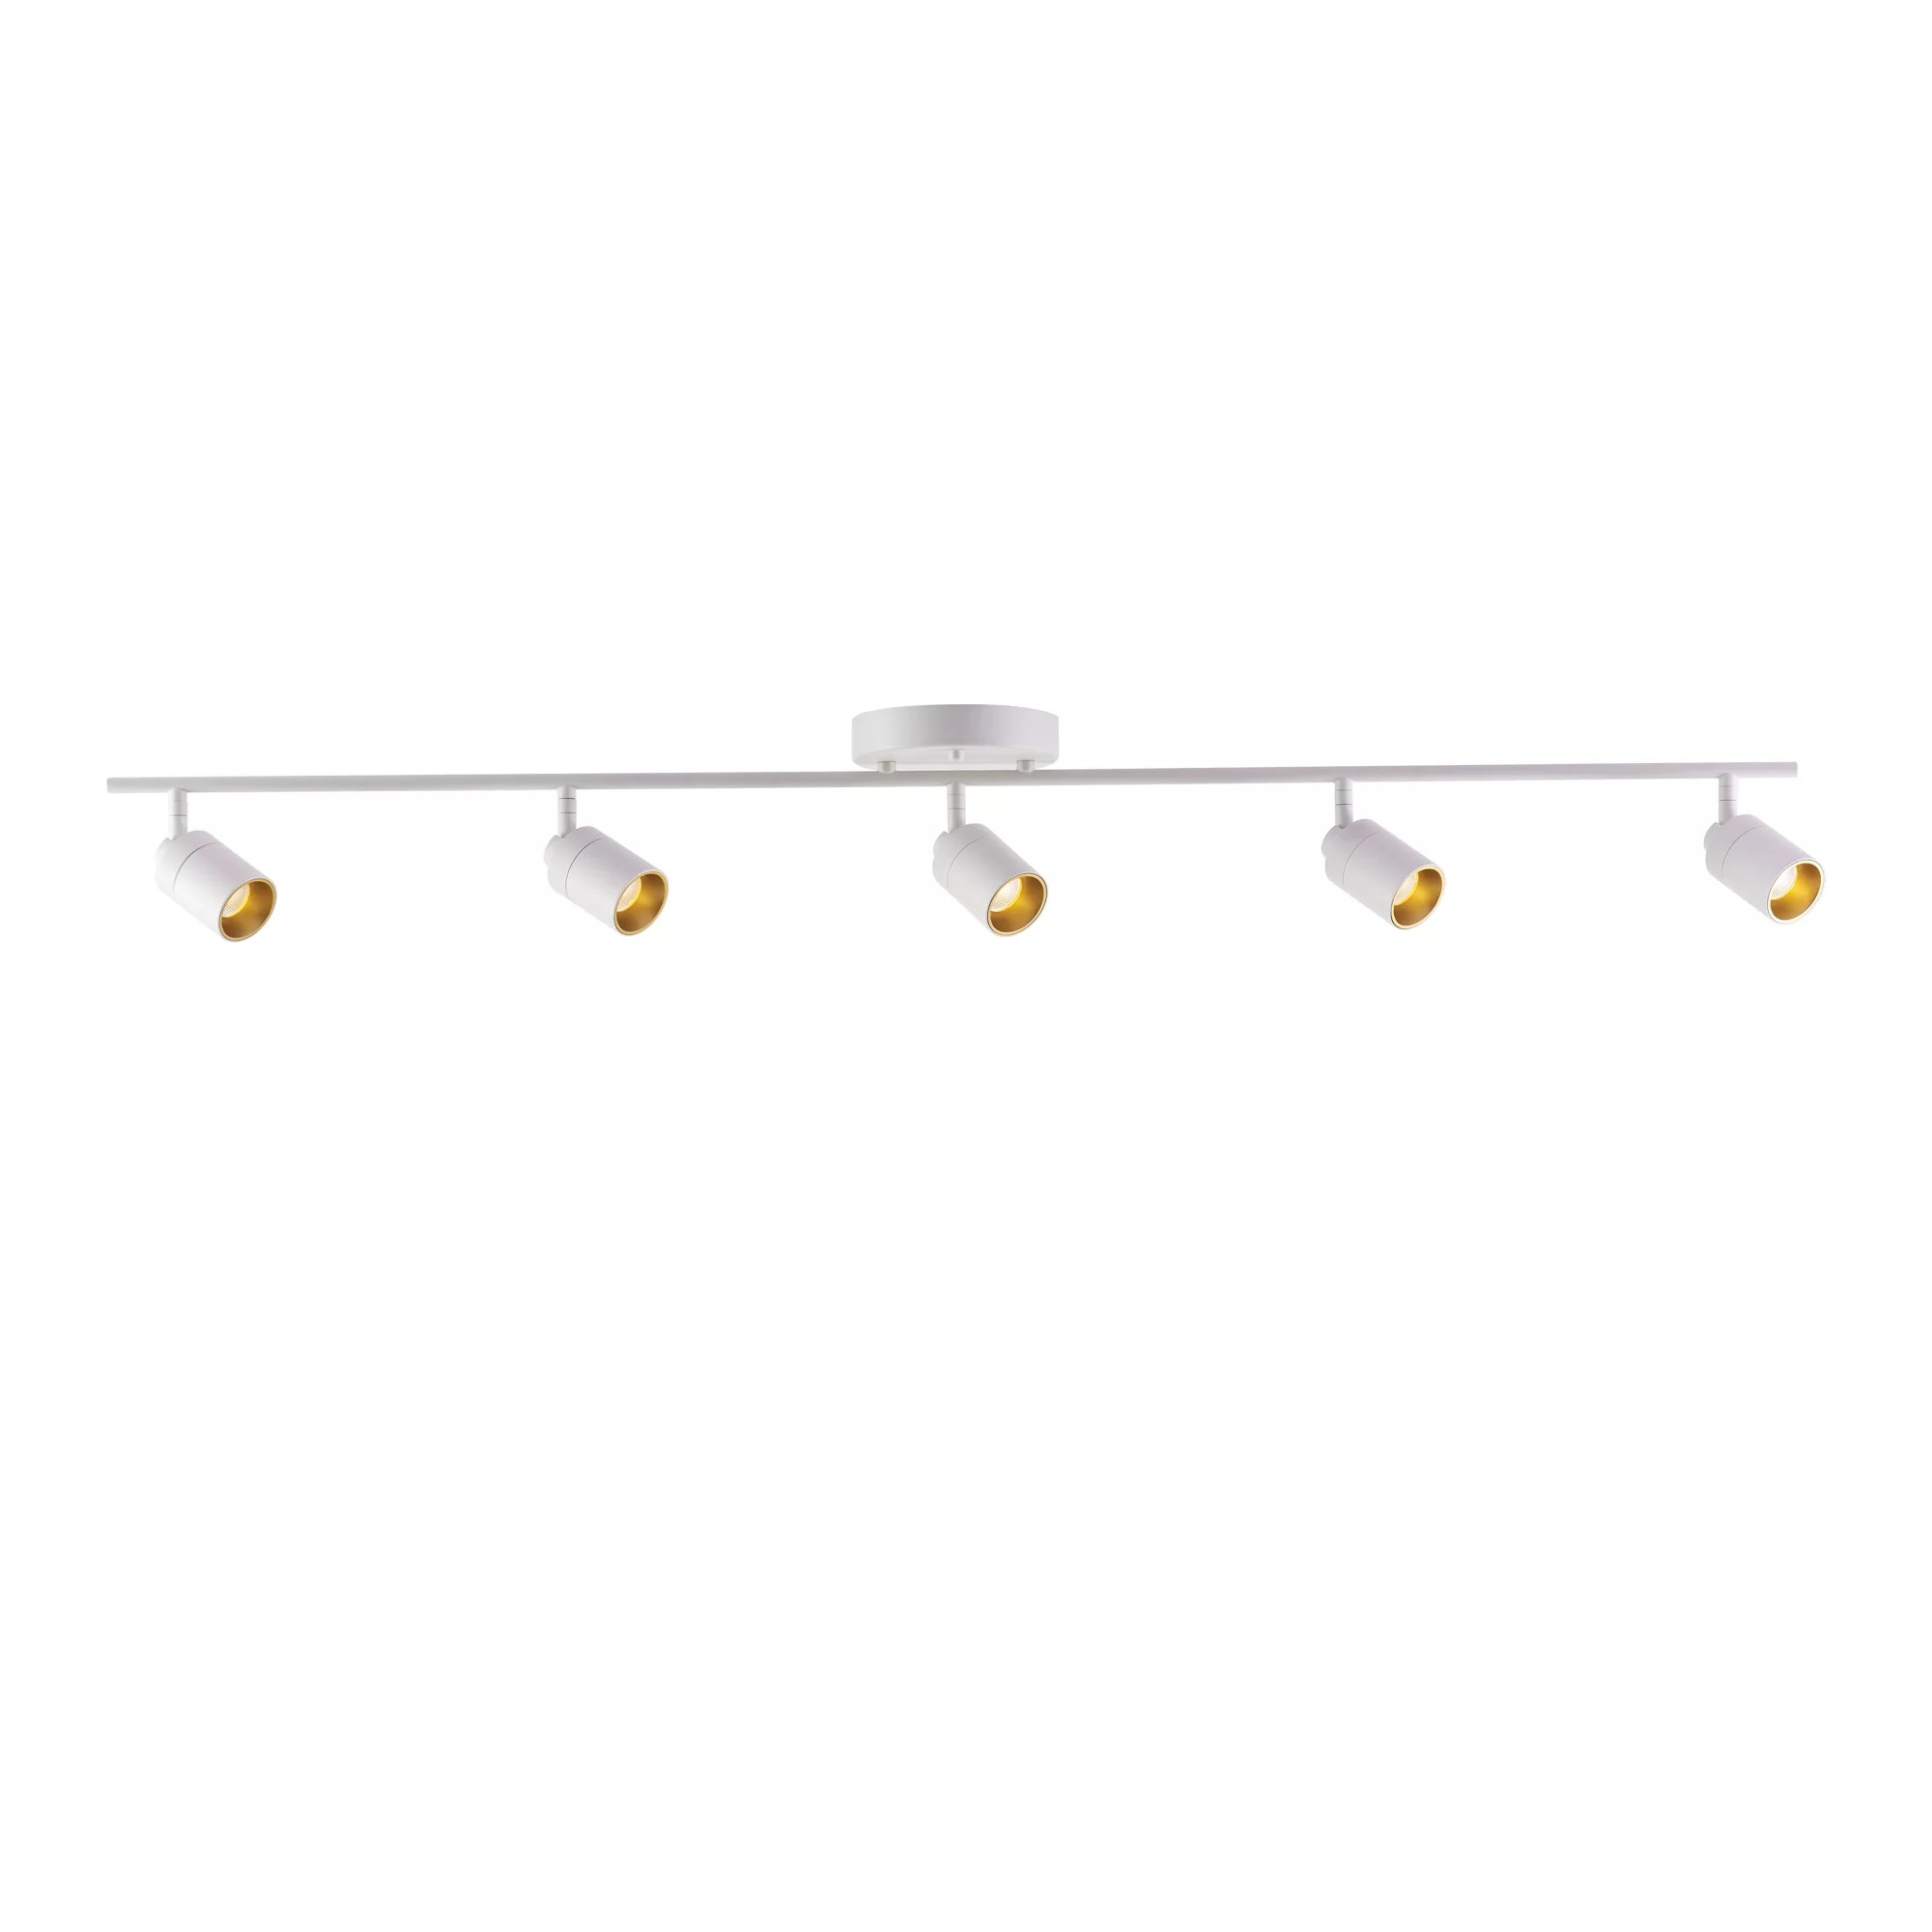 led track light fixture ceiling lighting with rotating head